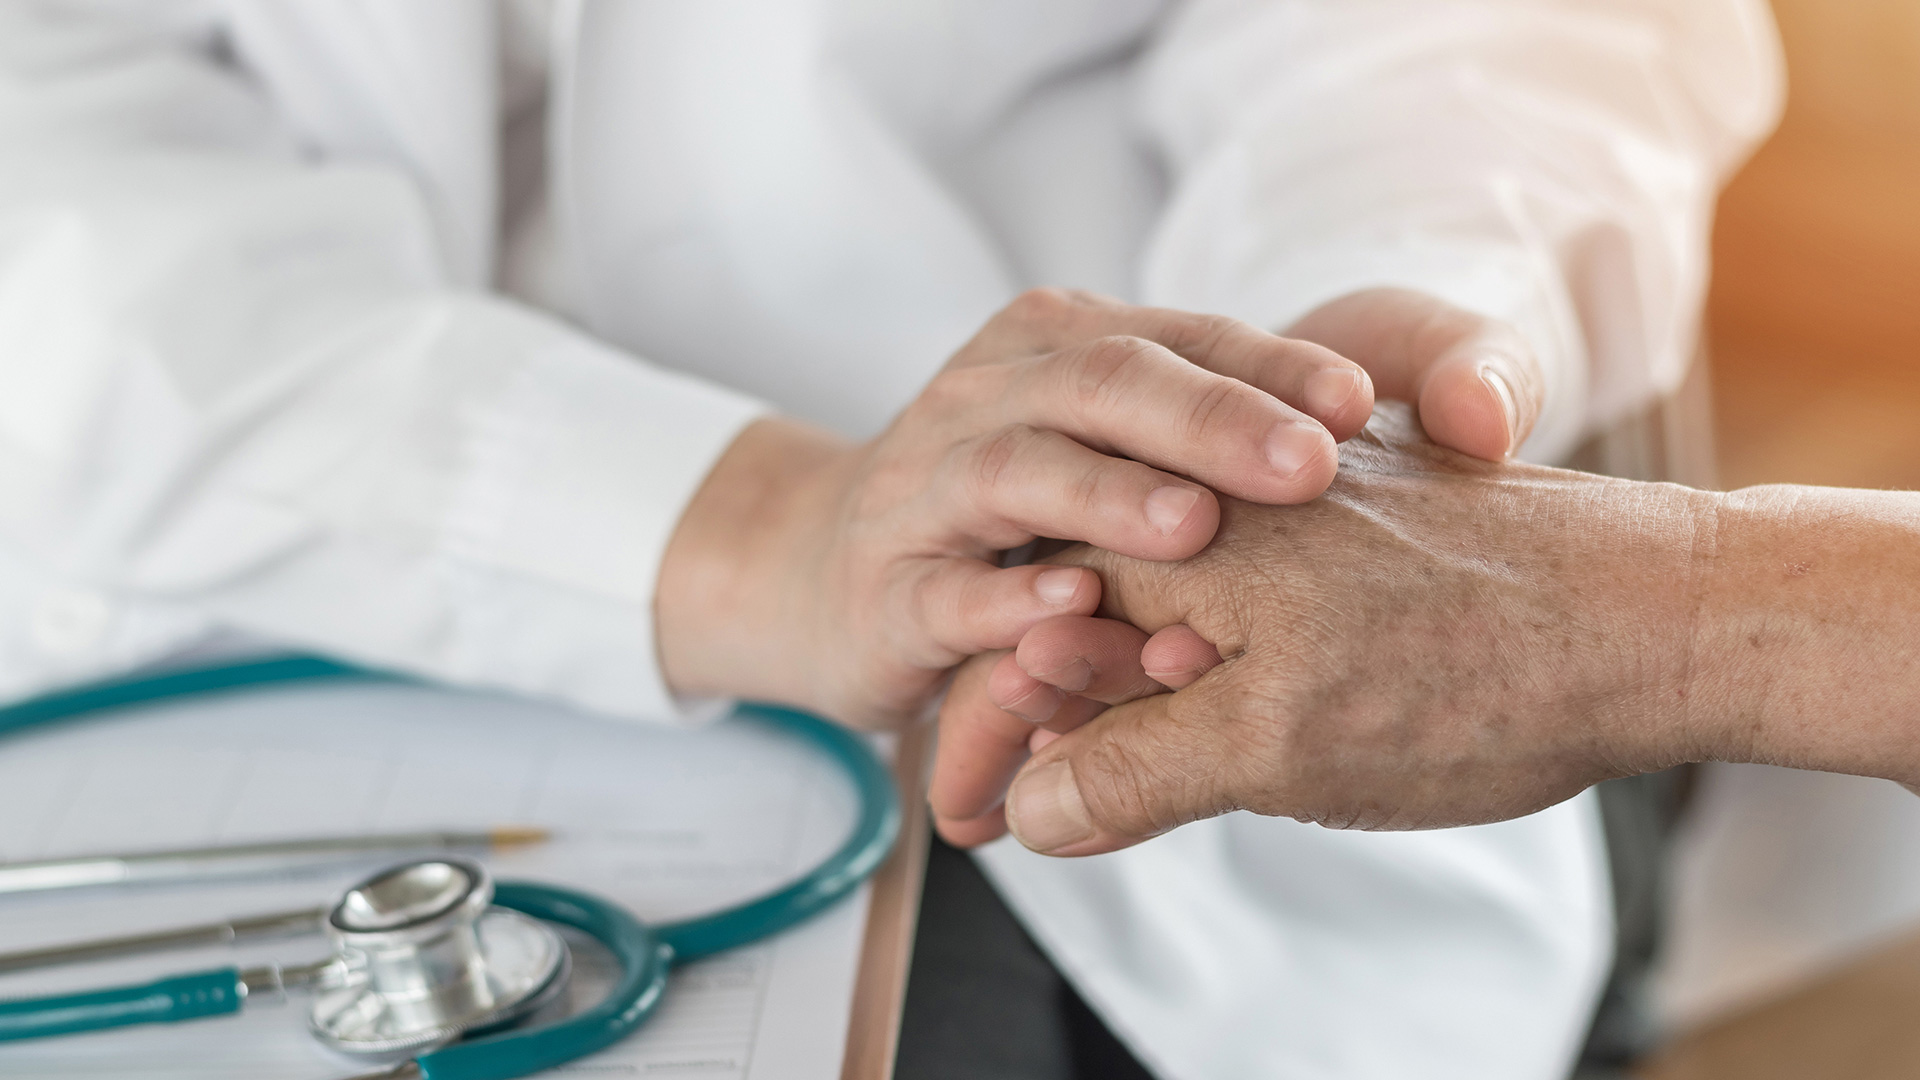 Doctor in a white coat holding a patient's hand.